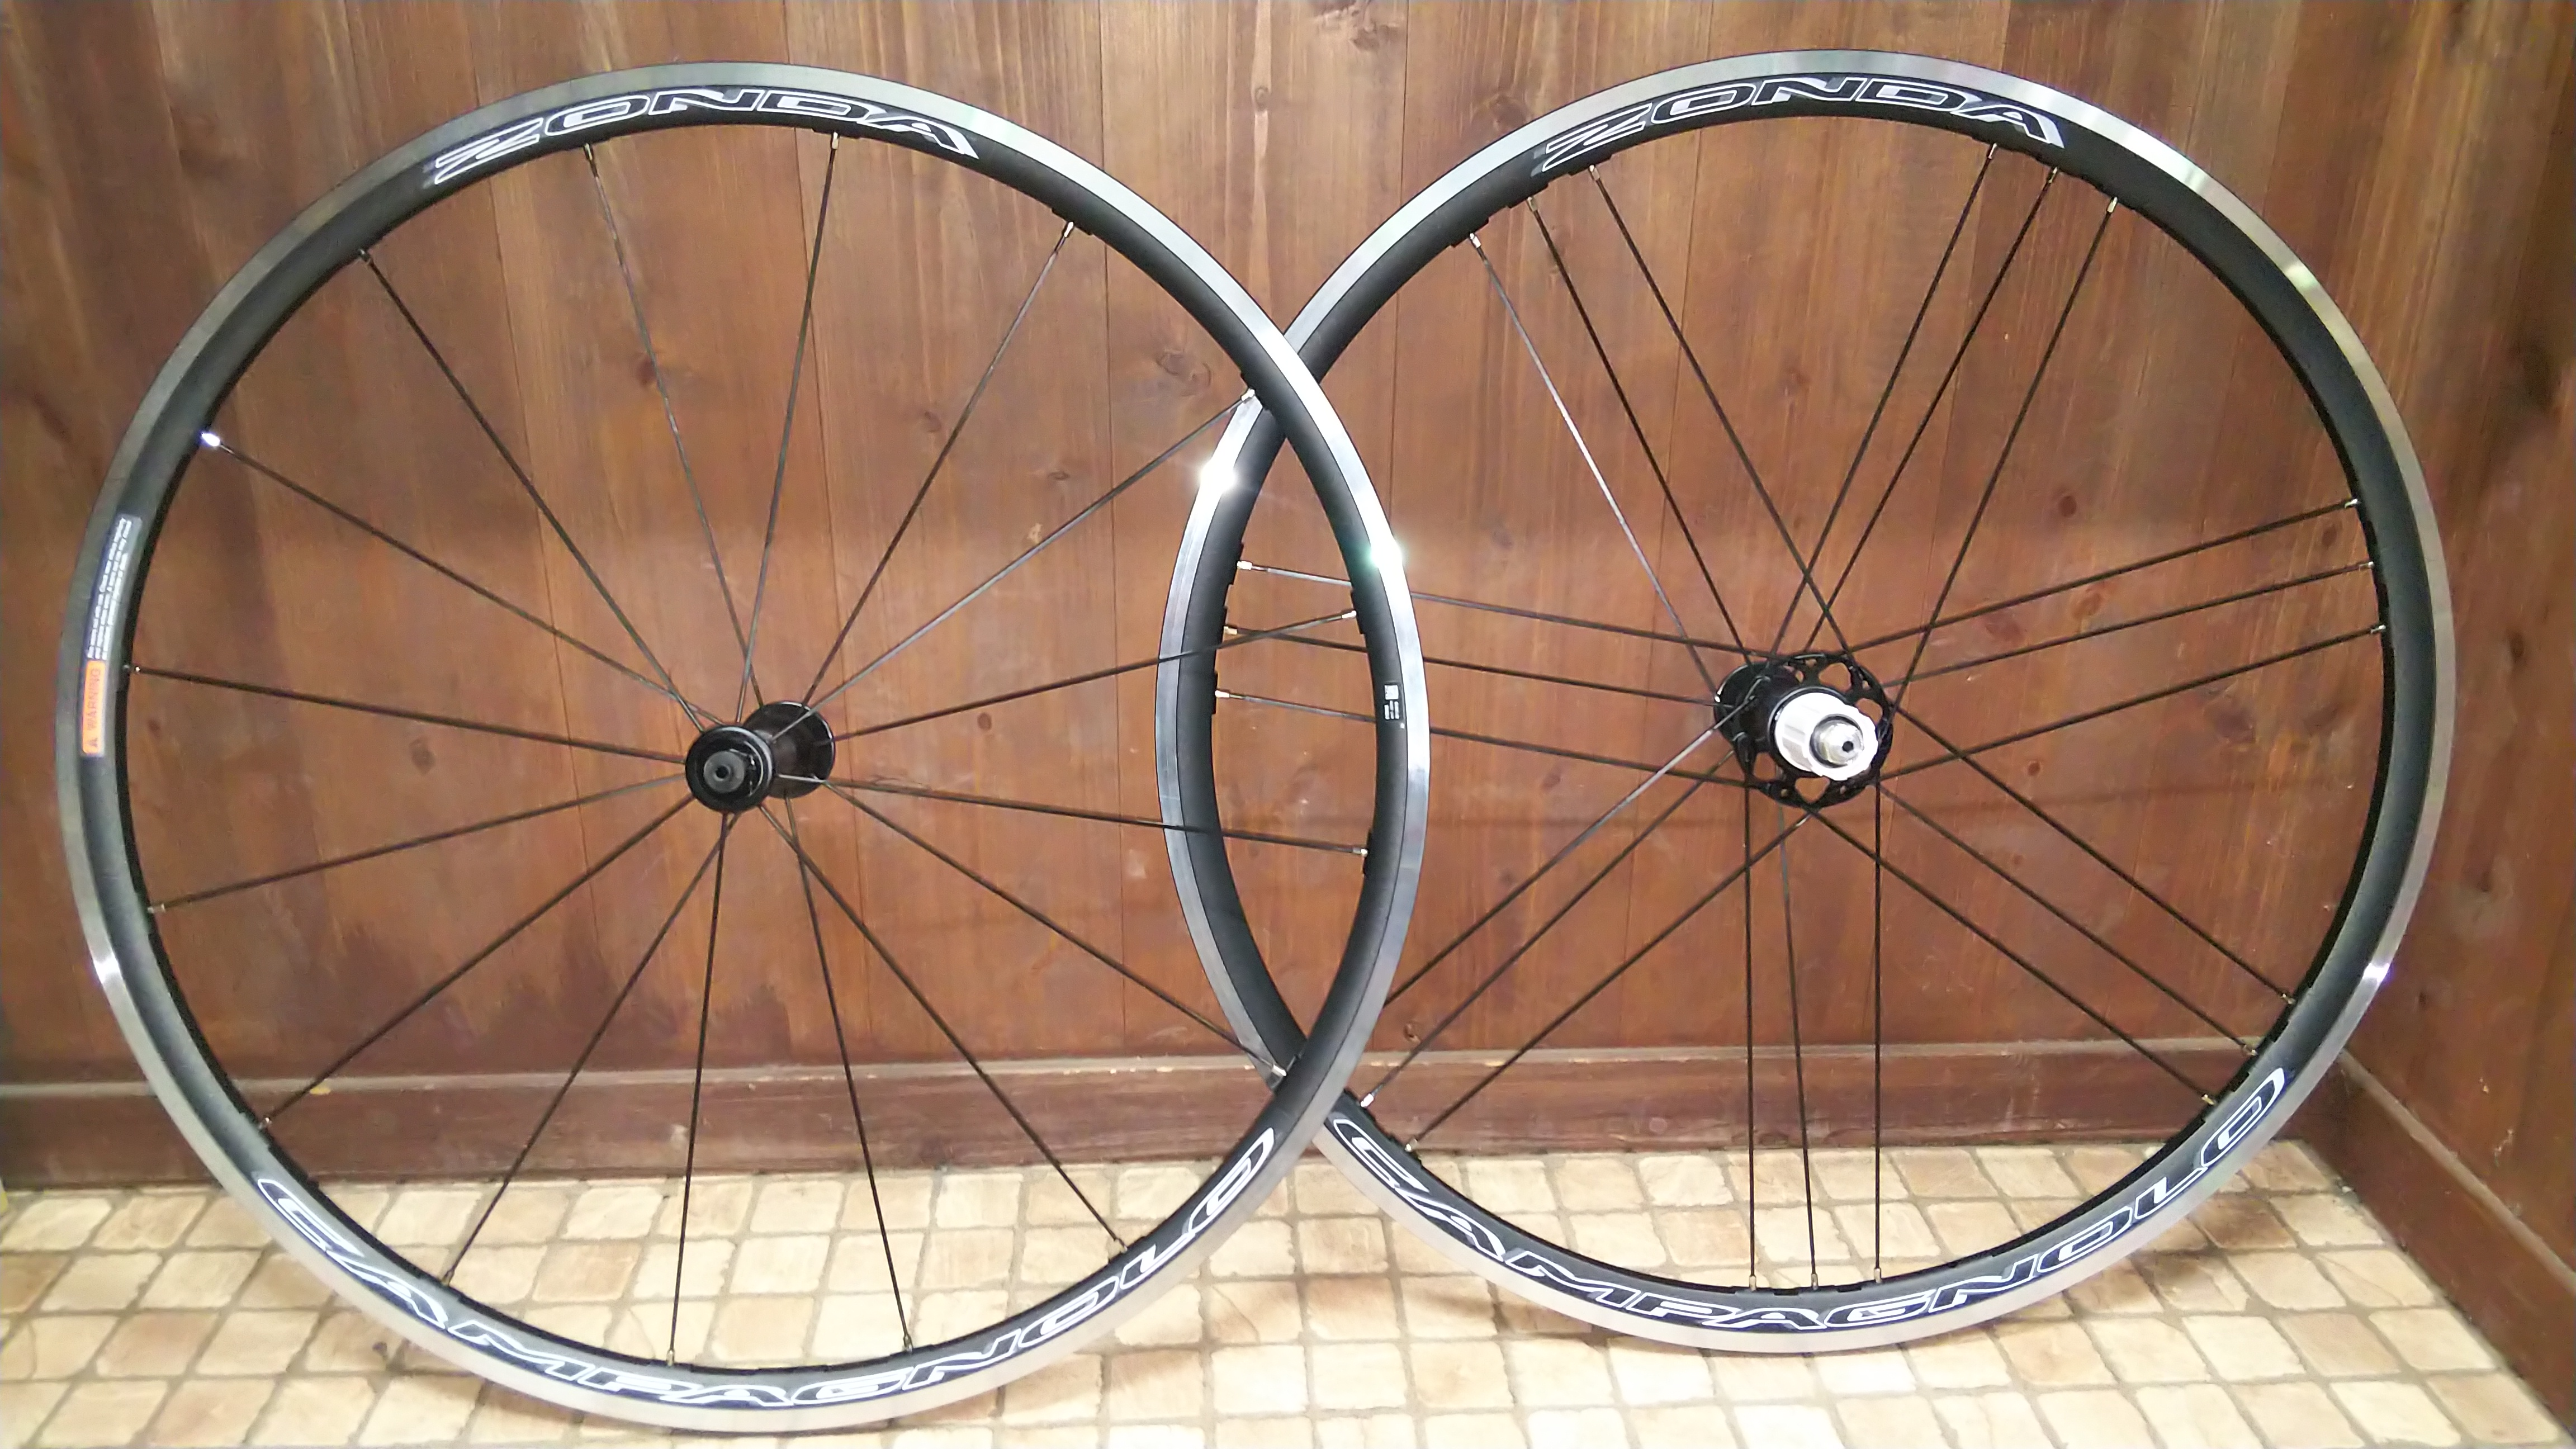 http://www.cyclomotohara.com/products/images/DSC_2865.JPG